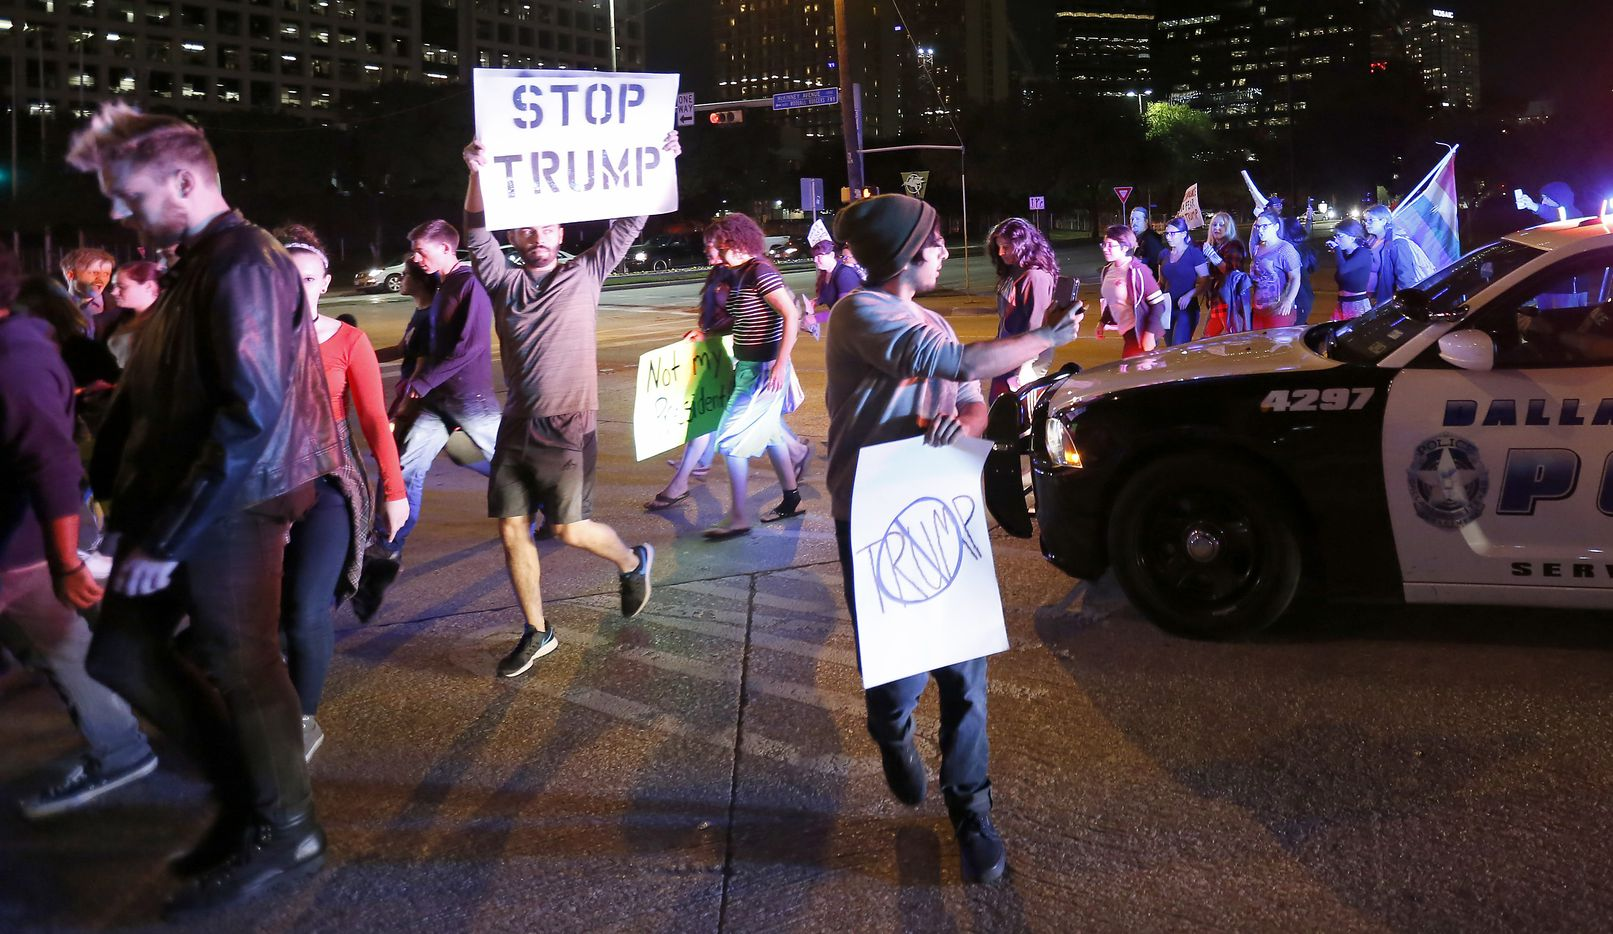 Protesters against President-elect Donald Trump march in downtown Dallas, Thursday, Nov. 10, 2016.